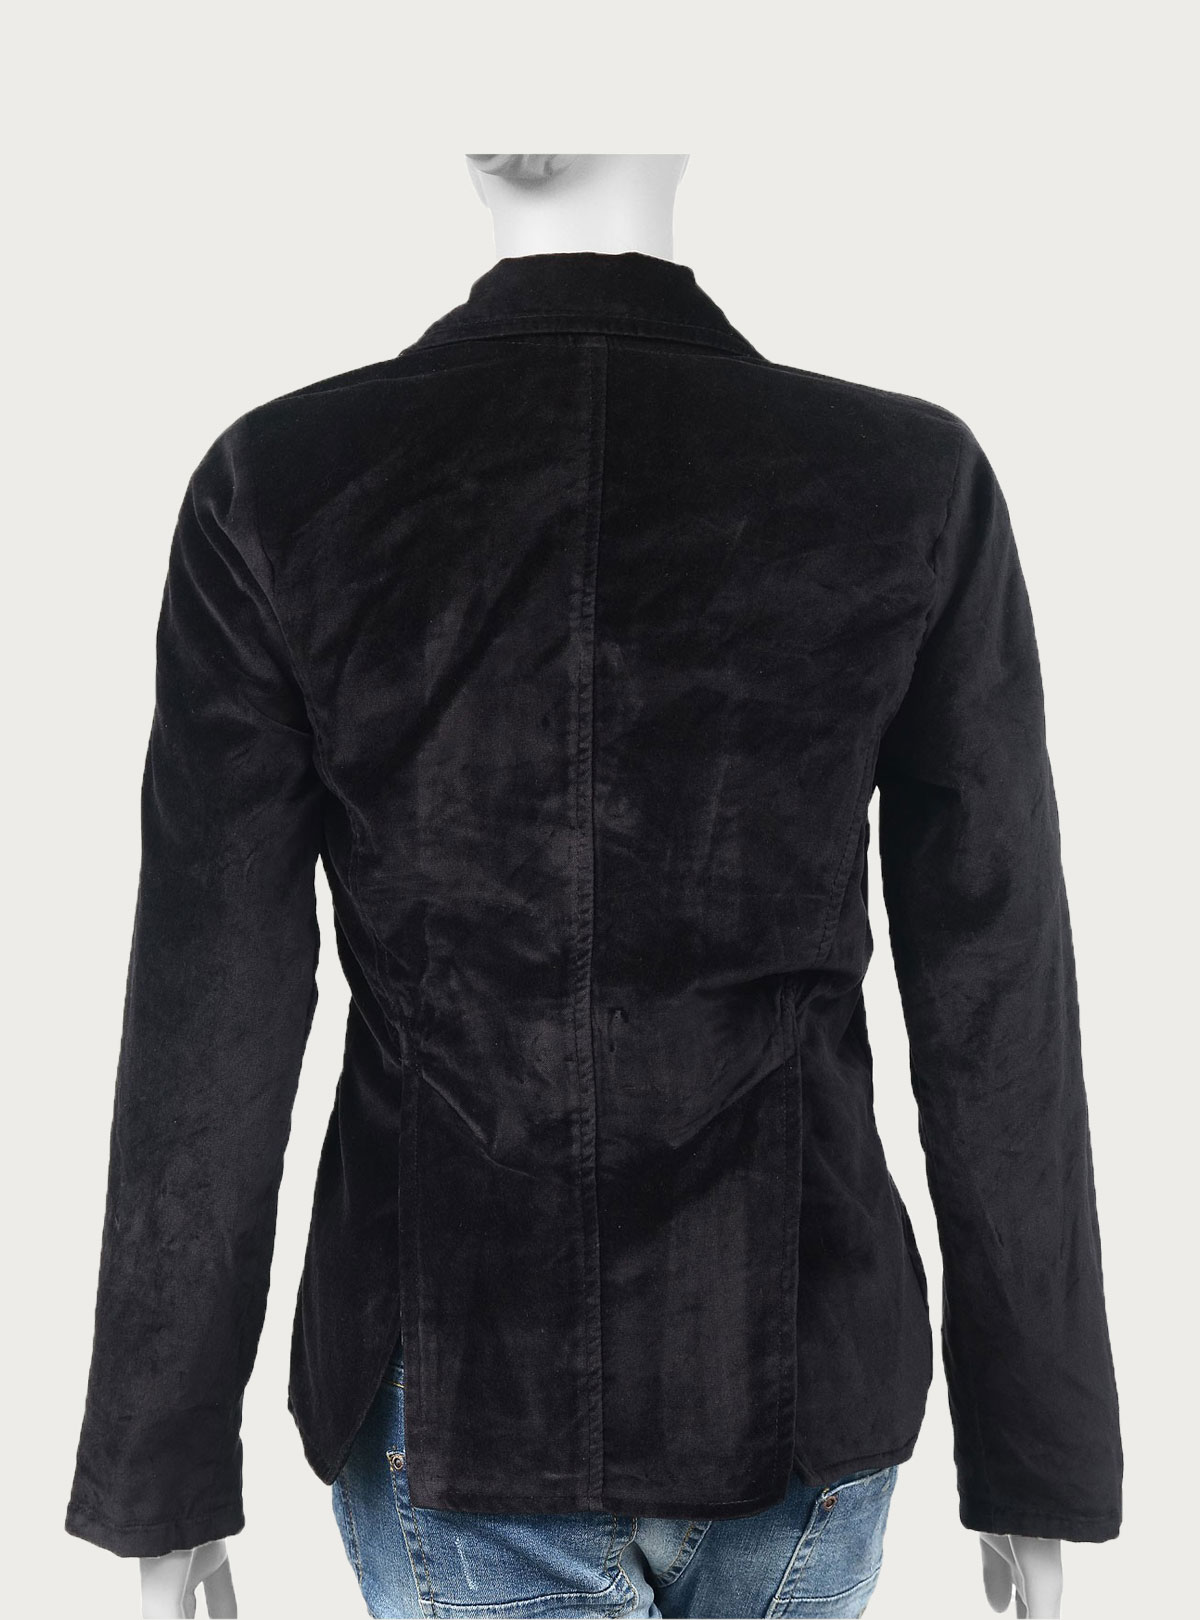 Stylish Black Blazer By ESHO INSTYLE